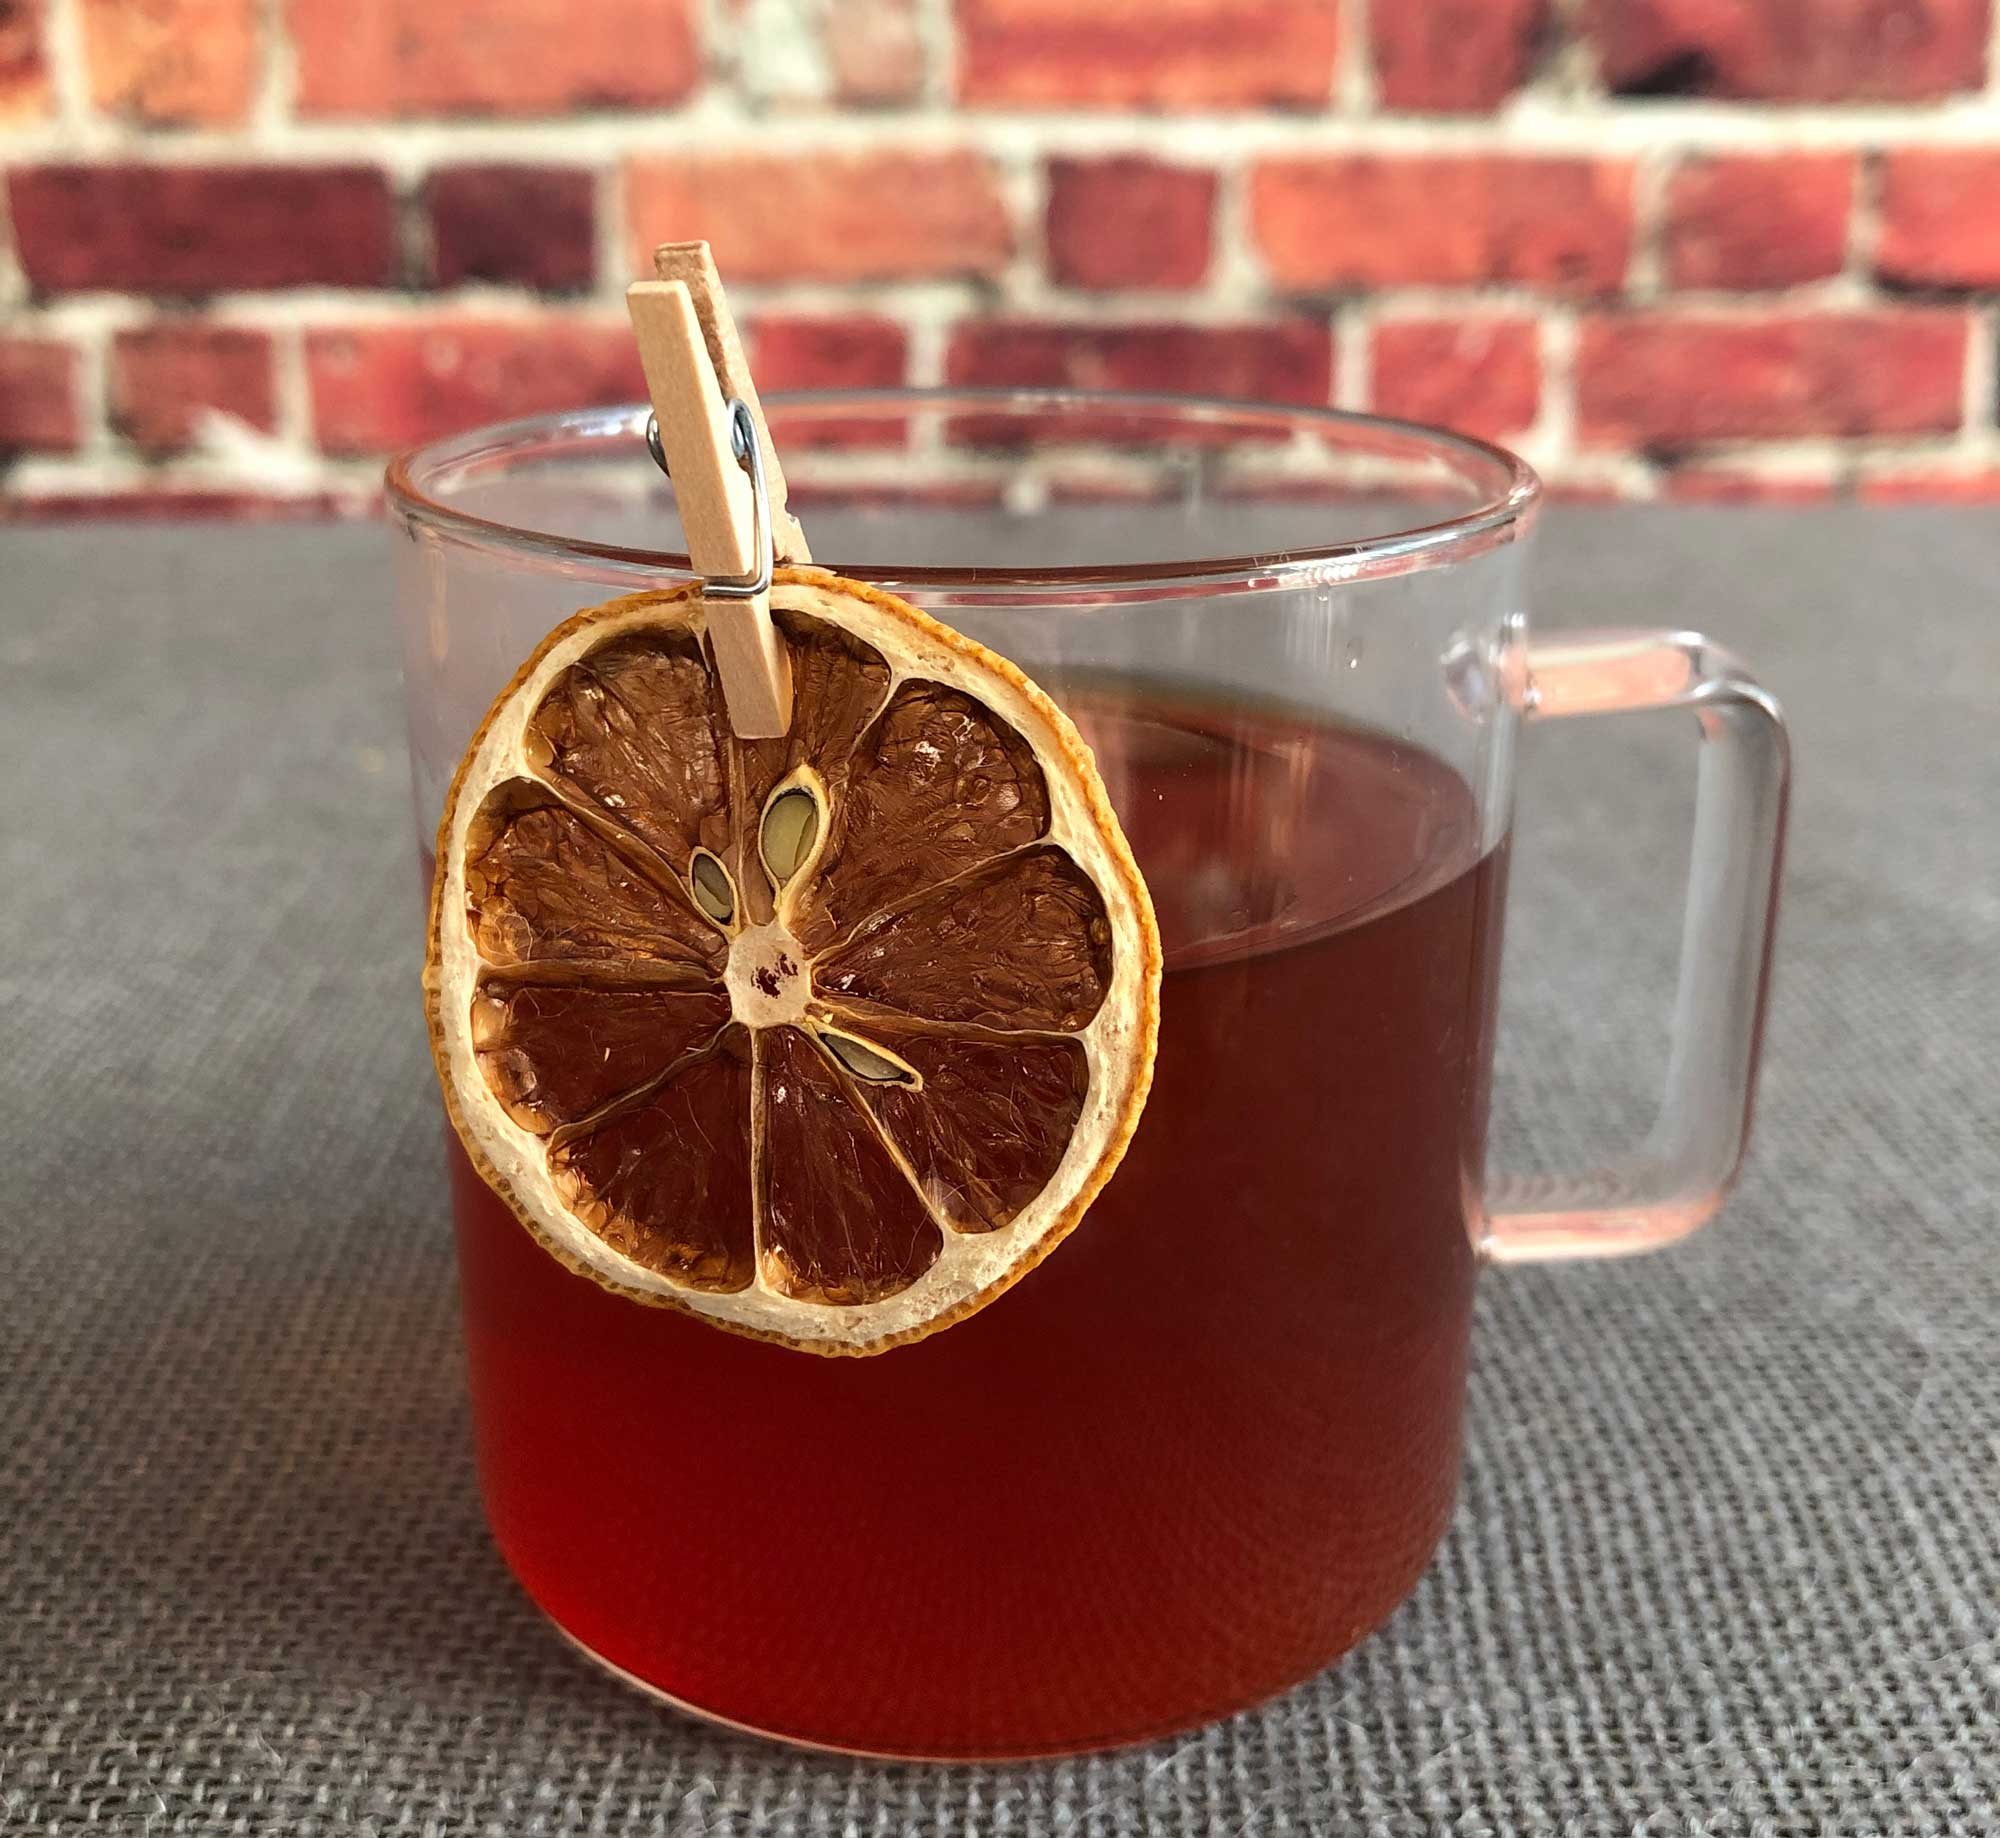 An example of the Bittered Ruby Punch, the mixed drink (punch) featuring black tea, Byrrh Grand Quinquina, Batavia Arrack van Oosten, and lemon juice; photo by Lee Edwards